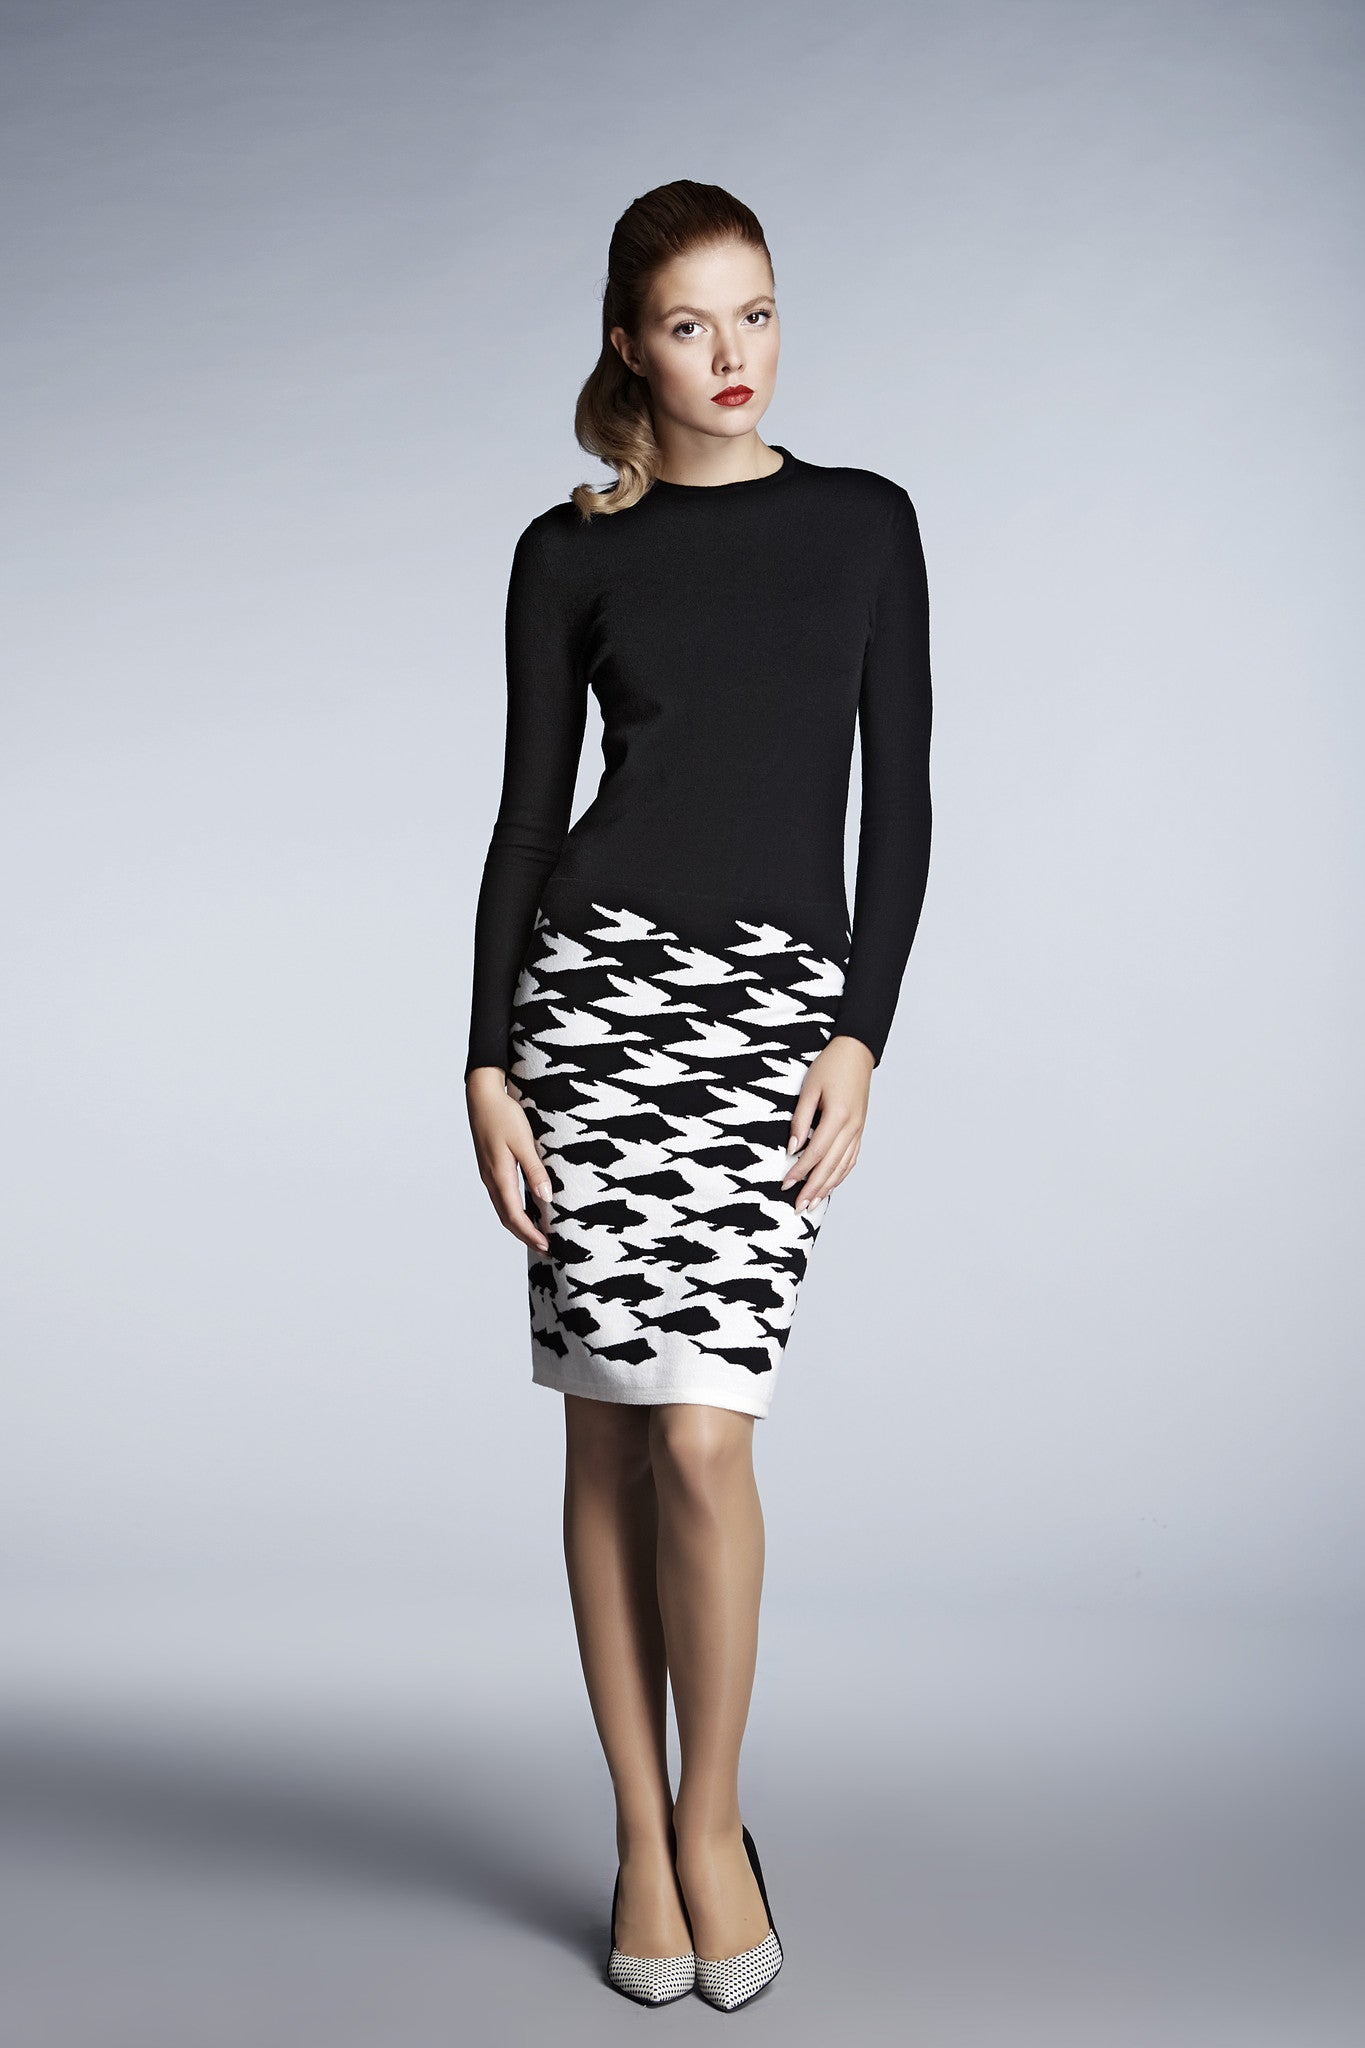 Black illusion-houndstooth knitted jacquard dress